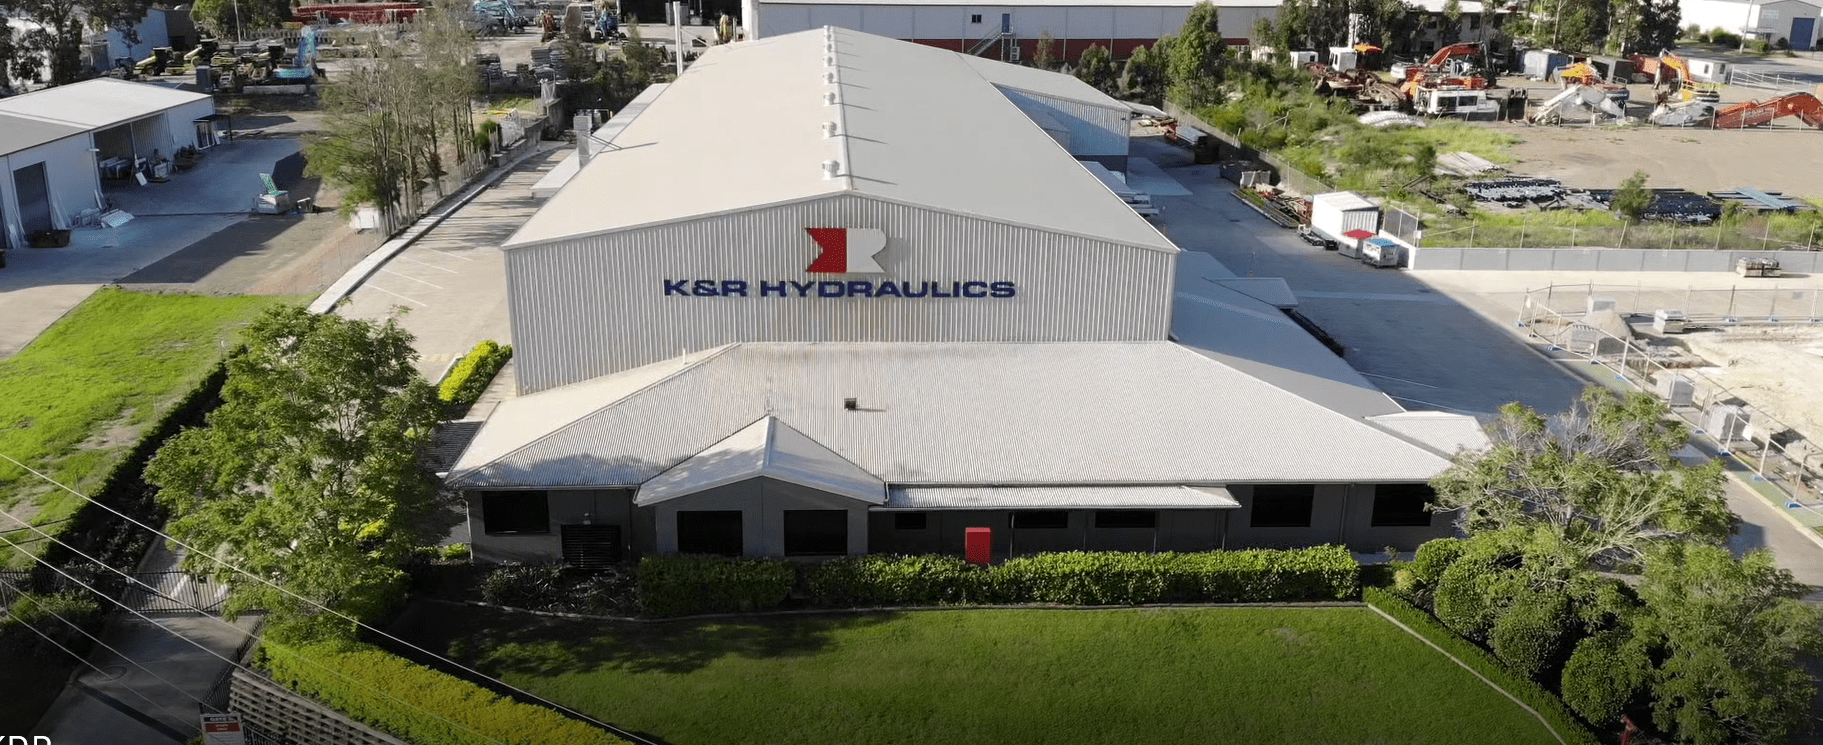 K&R Hydraulics warehouse Thornton